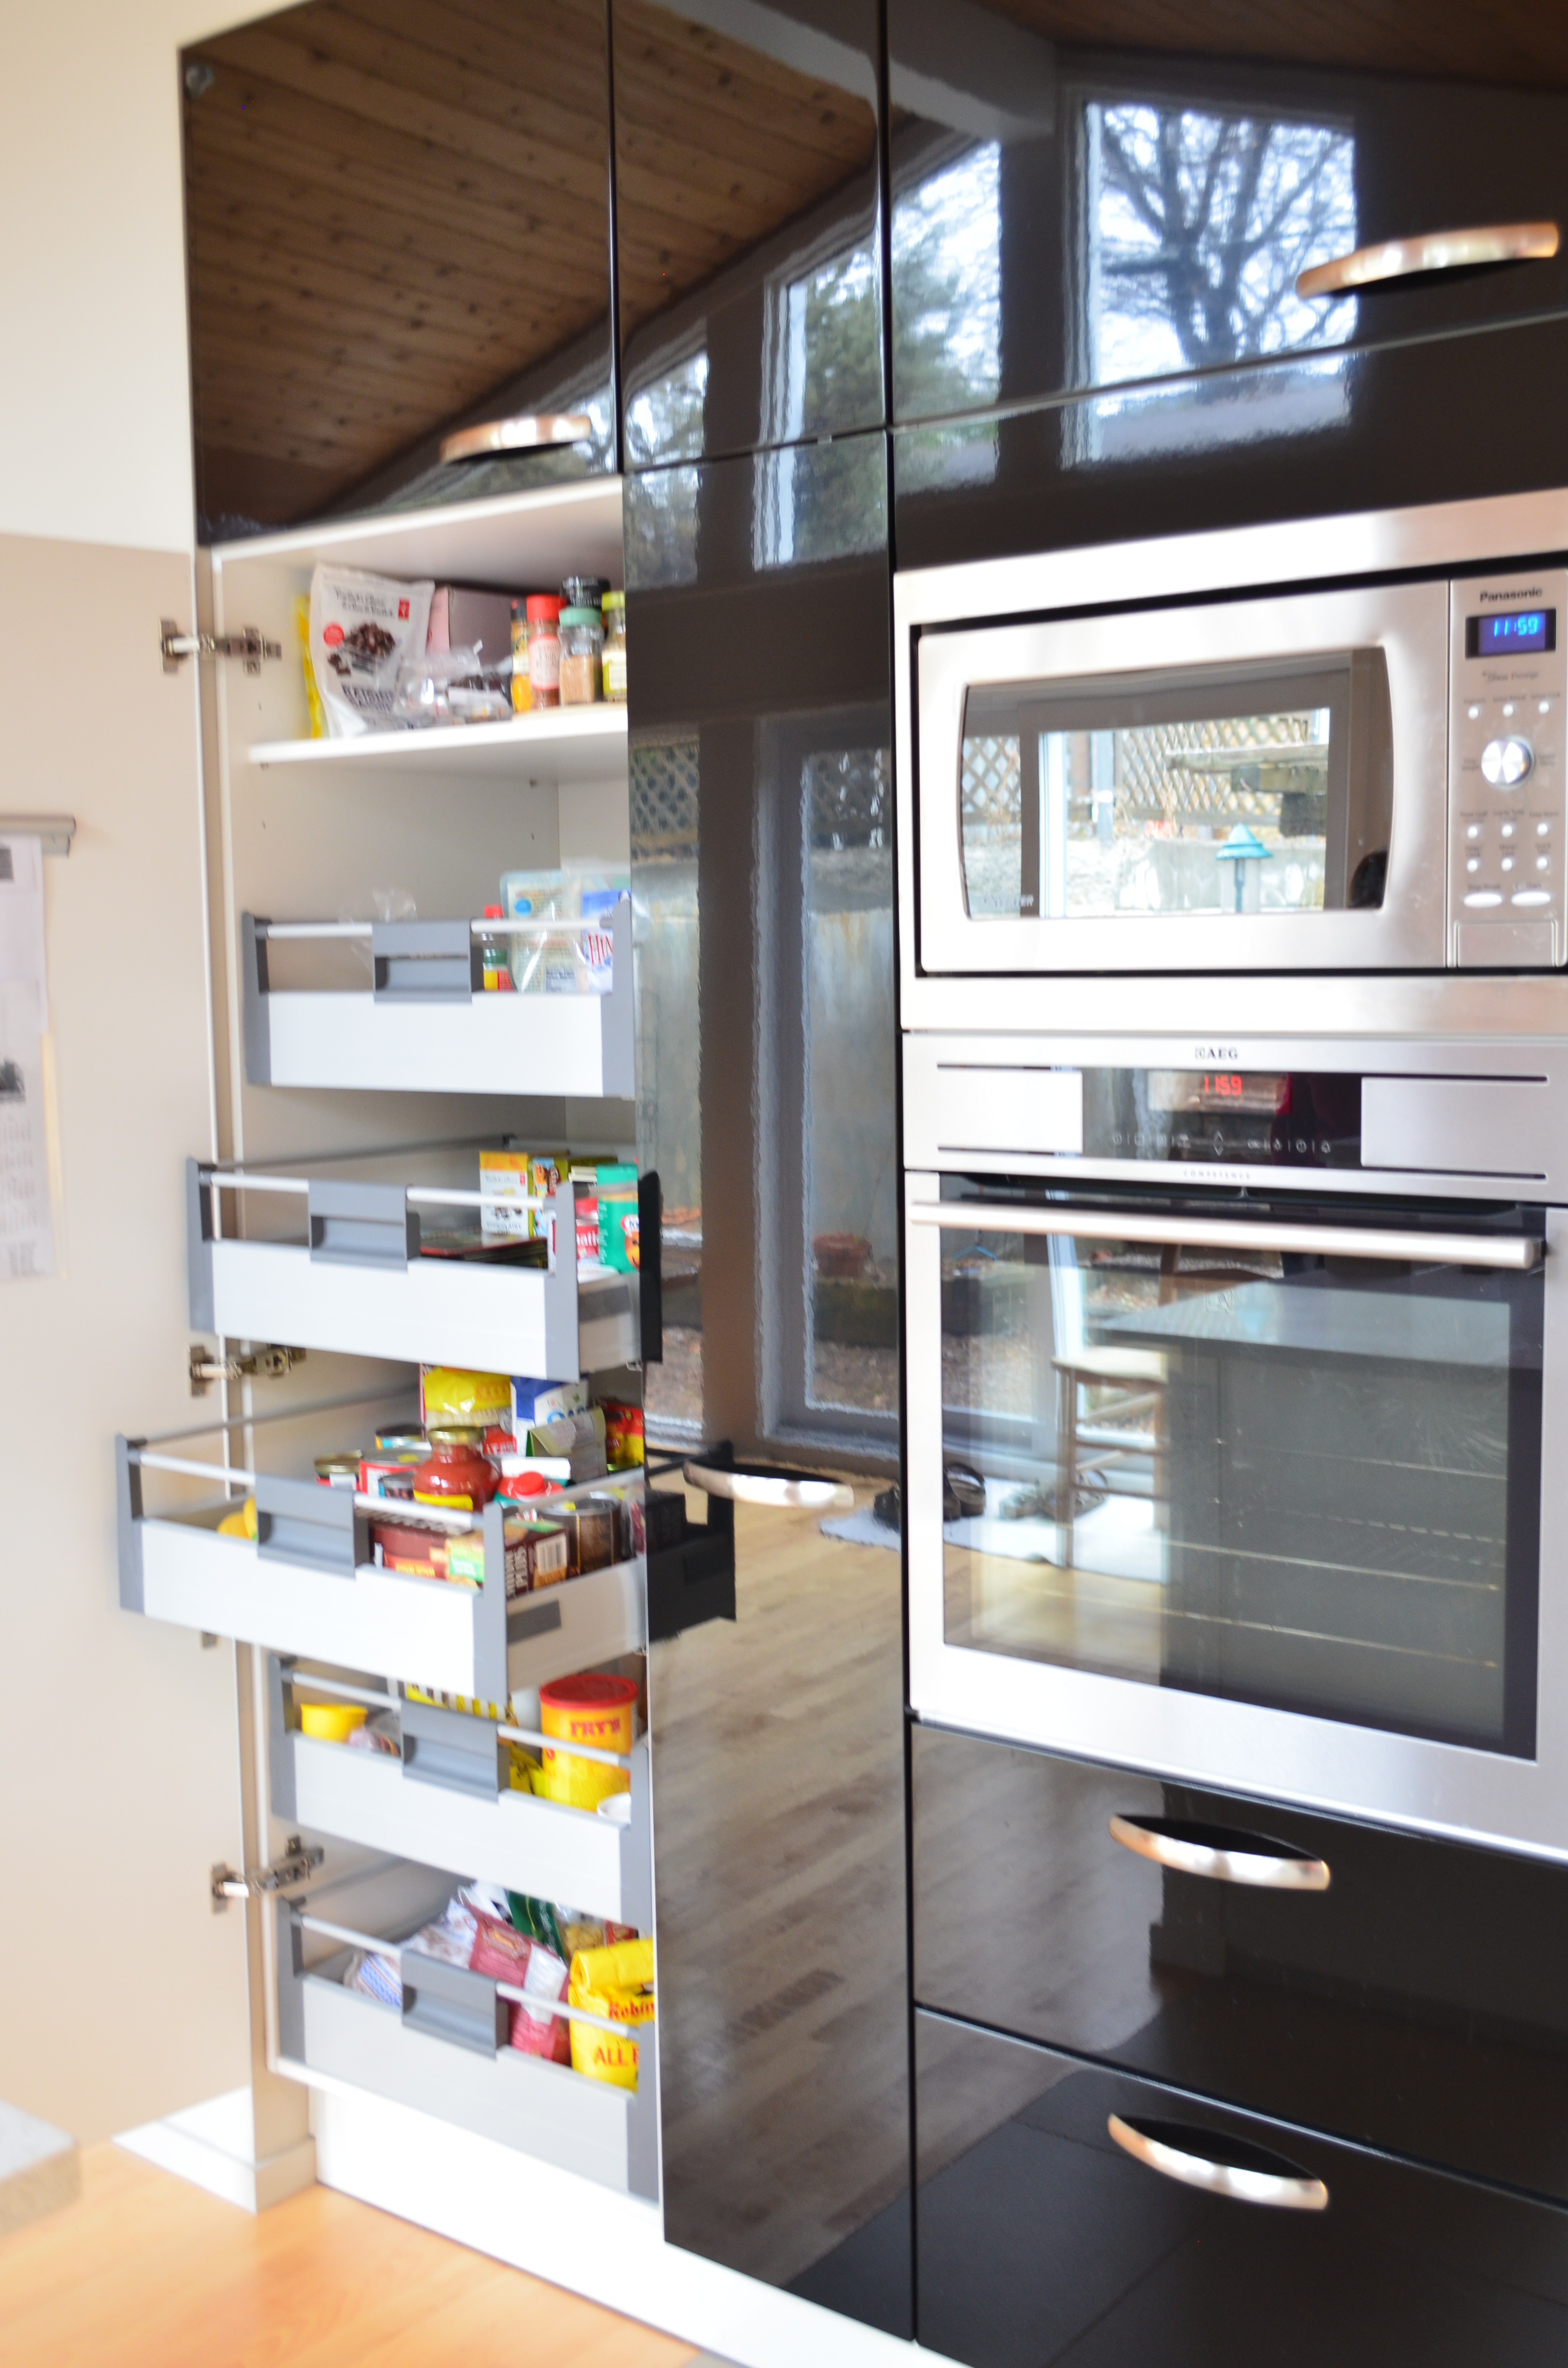 Pantry pull-outs behind door